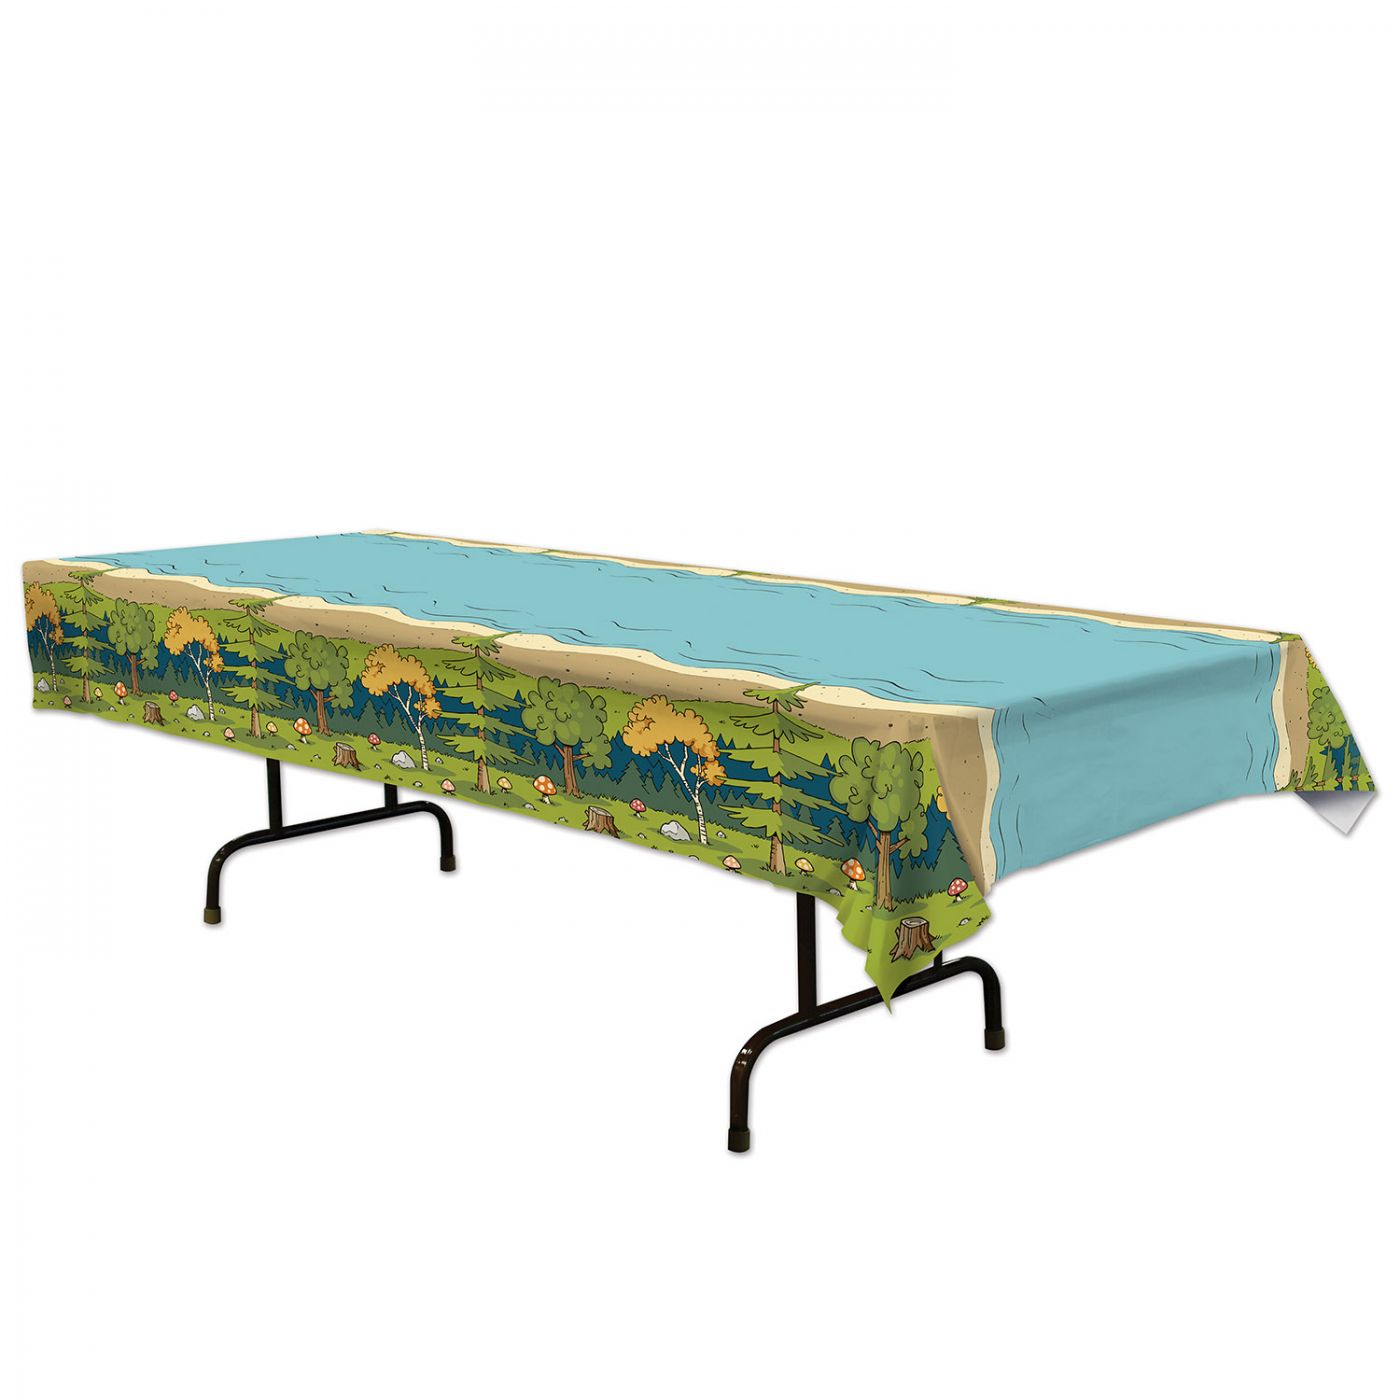 Woodland Friends Tablecover image